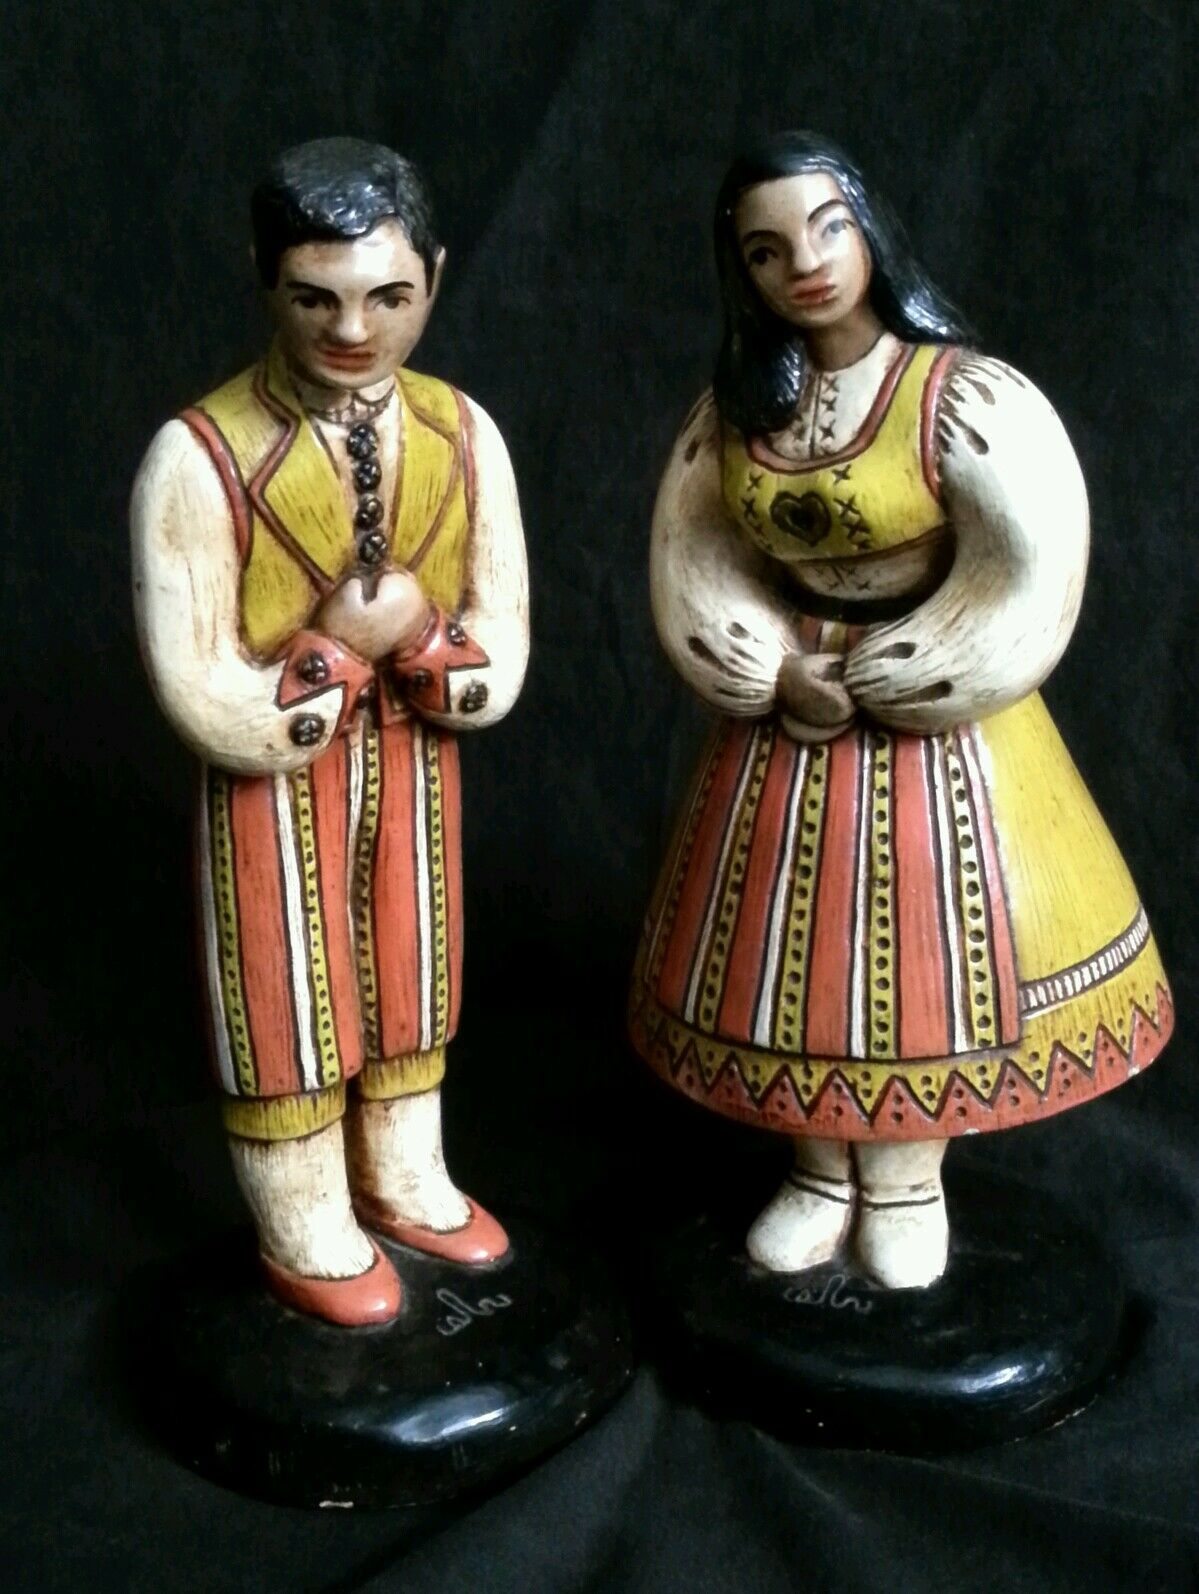 """Vintage hand made chalkware figurines in national costumes 10.5"""" S.America Euro"""